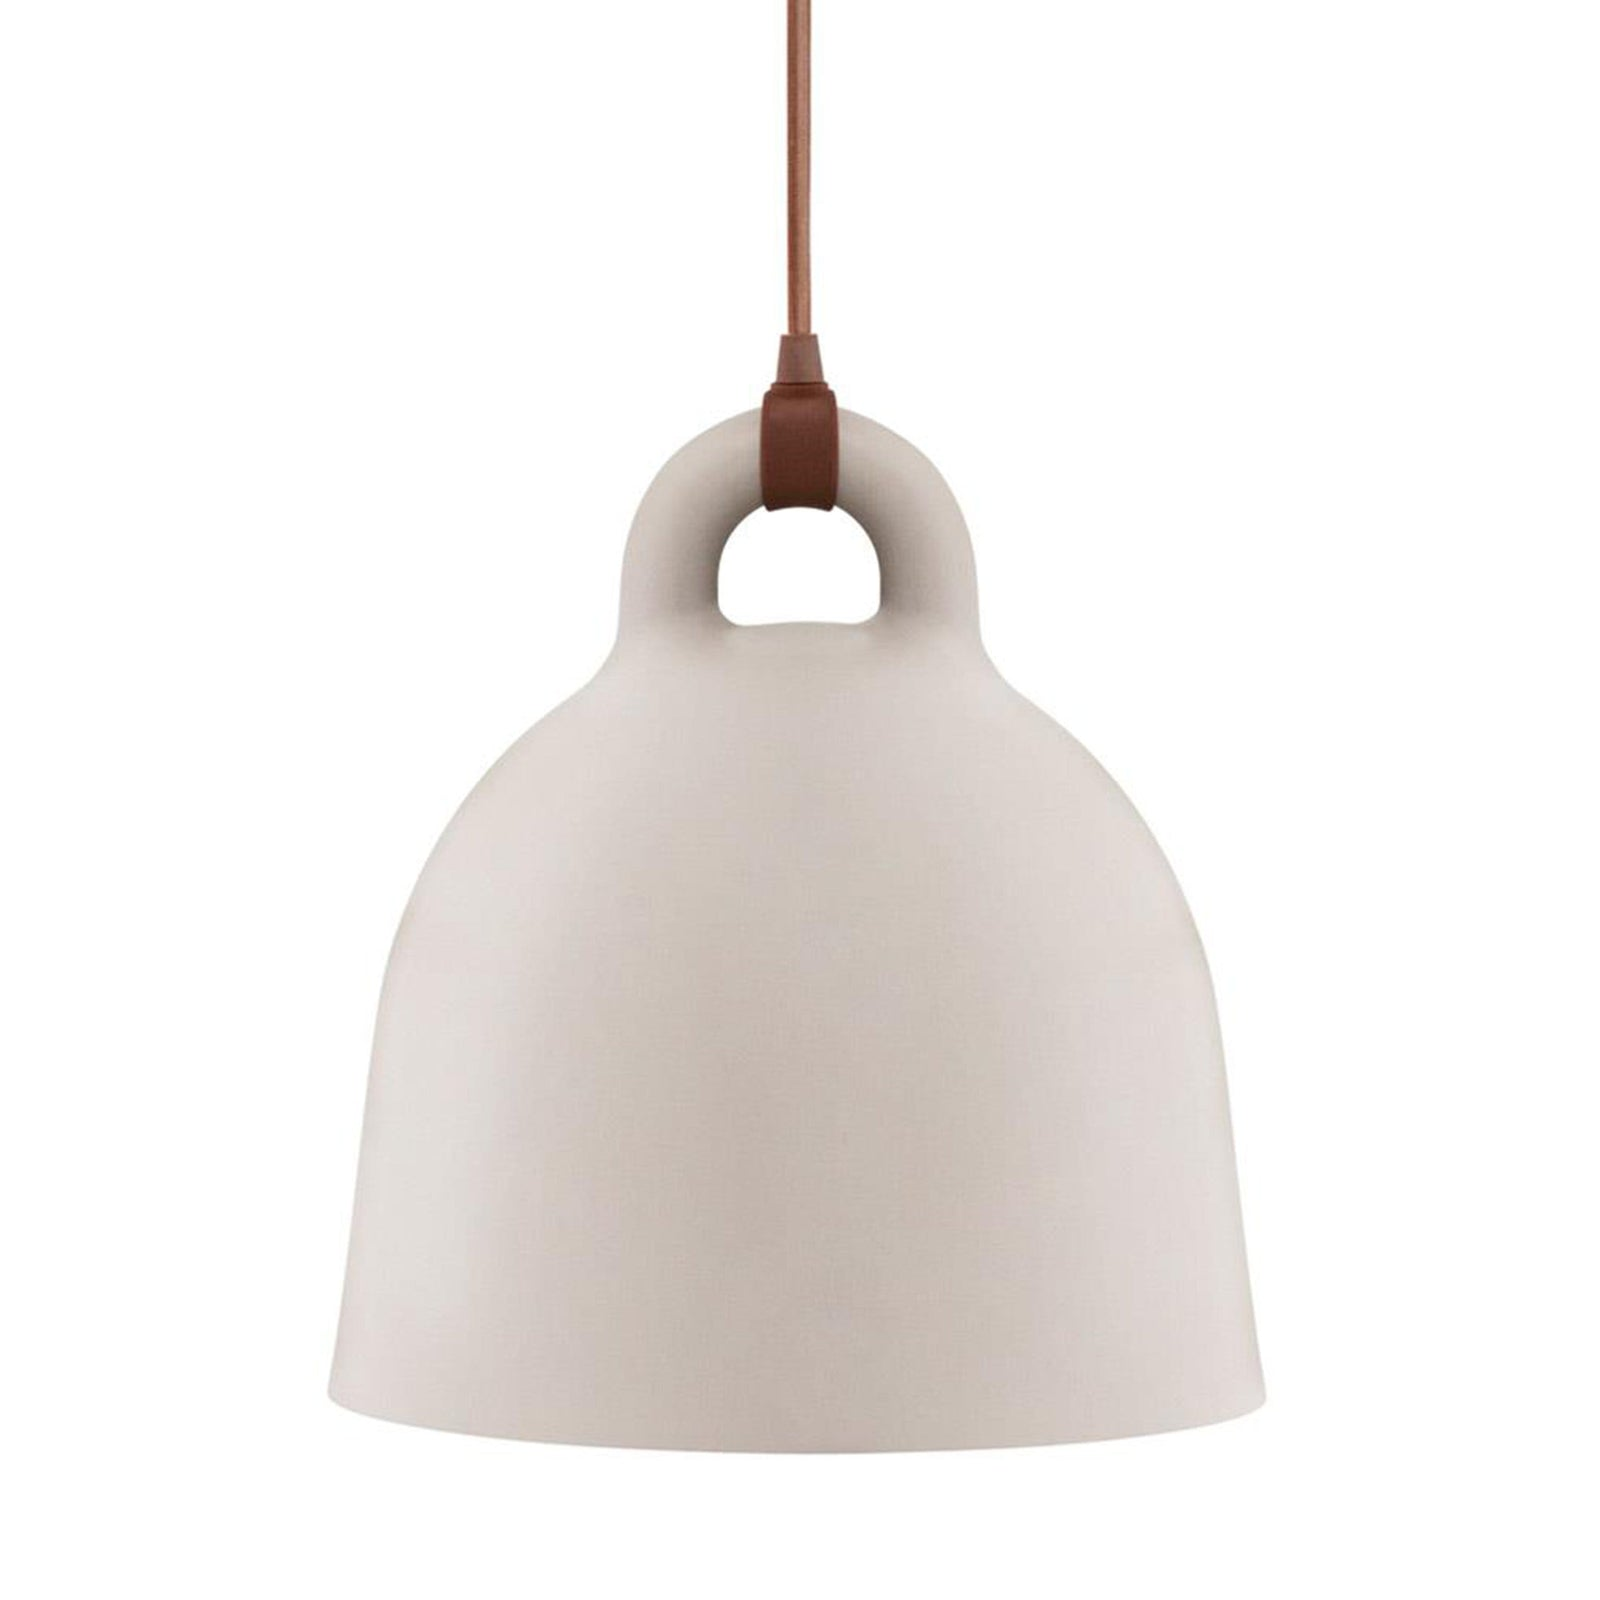 Norman Copenhagen Lighting Sand / Large Bell Lamp